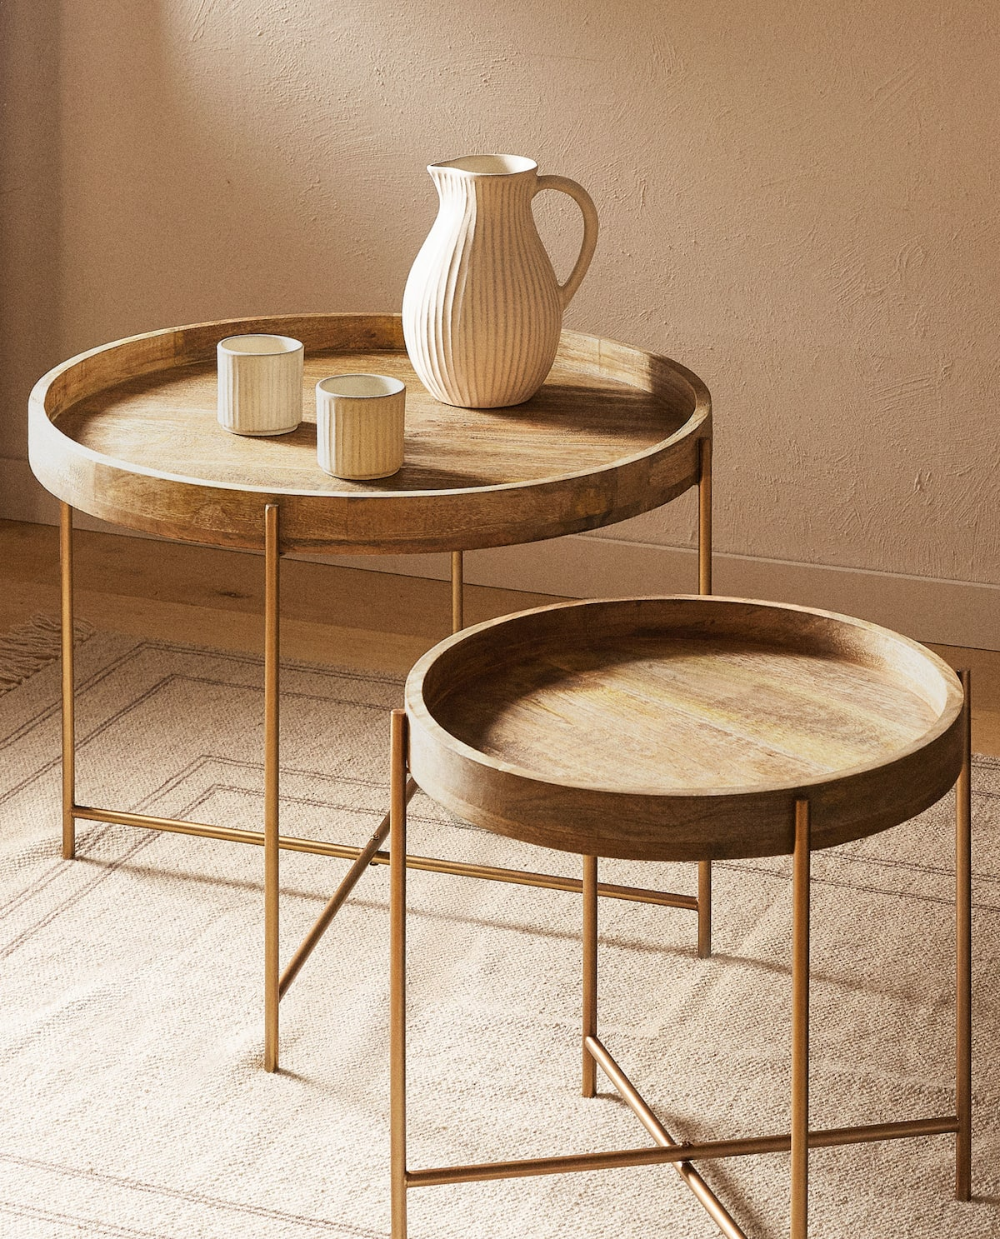 Pin By Nicole Hernandez On Bianca Coffee Table Furniture Ikea Nesting Tables [ 1239 x 1000 Pixel ]